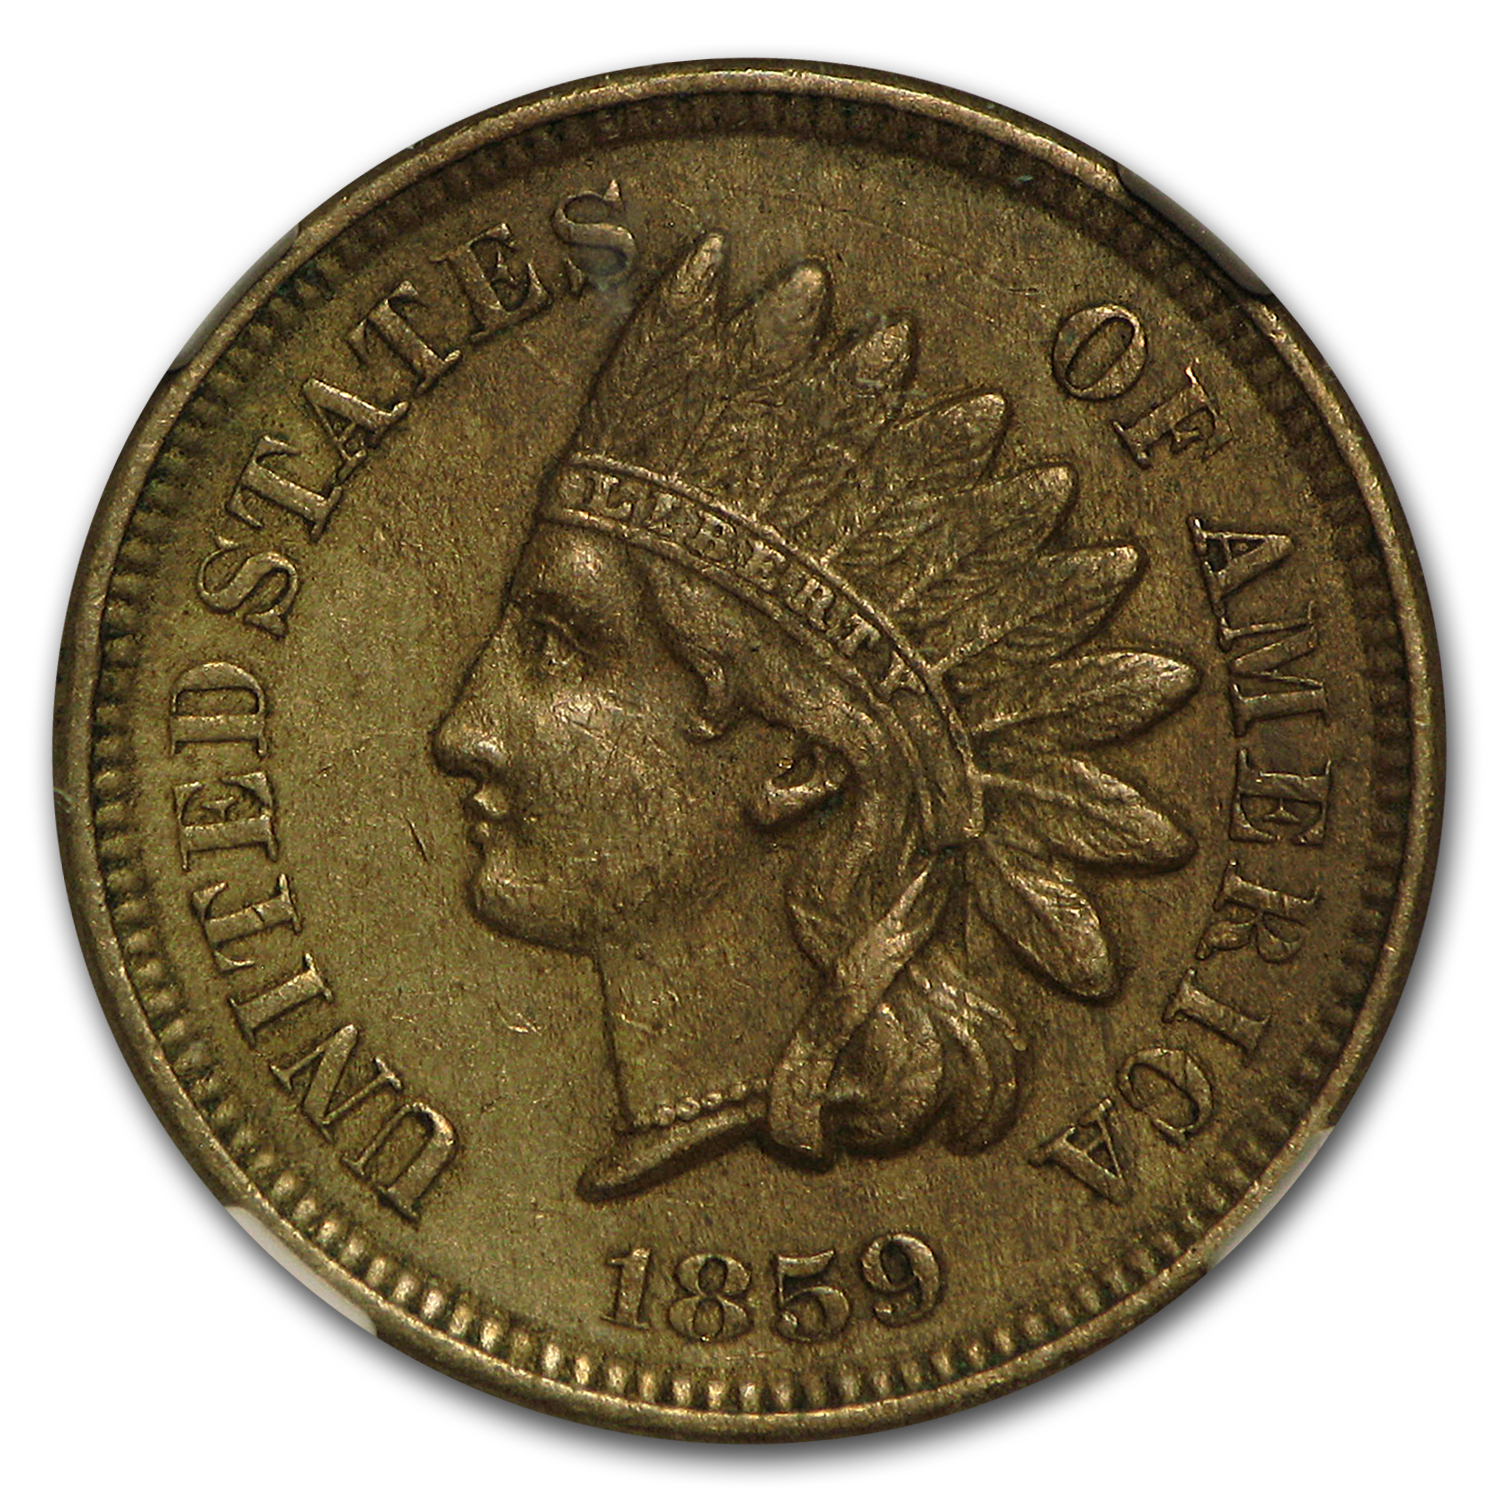 1859 Indian Head Cent XF-45 NGC